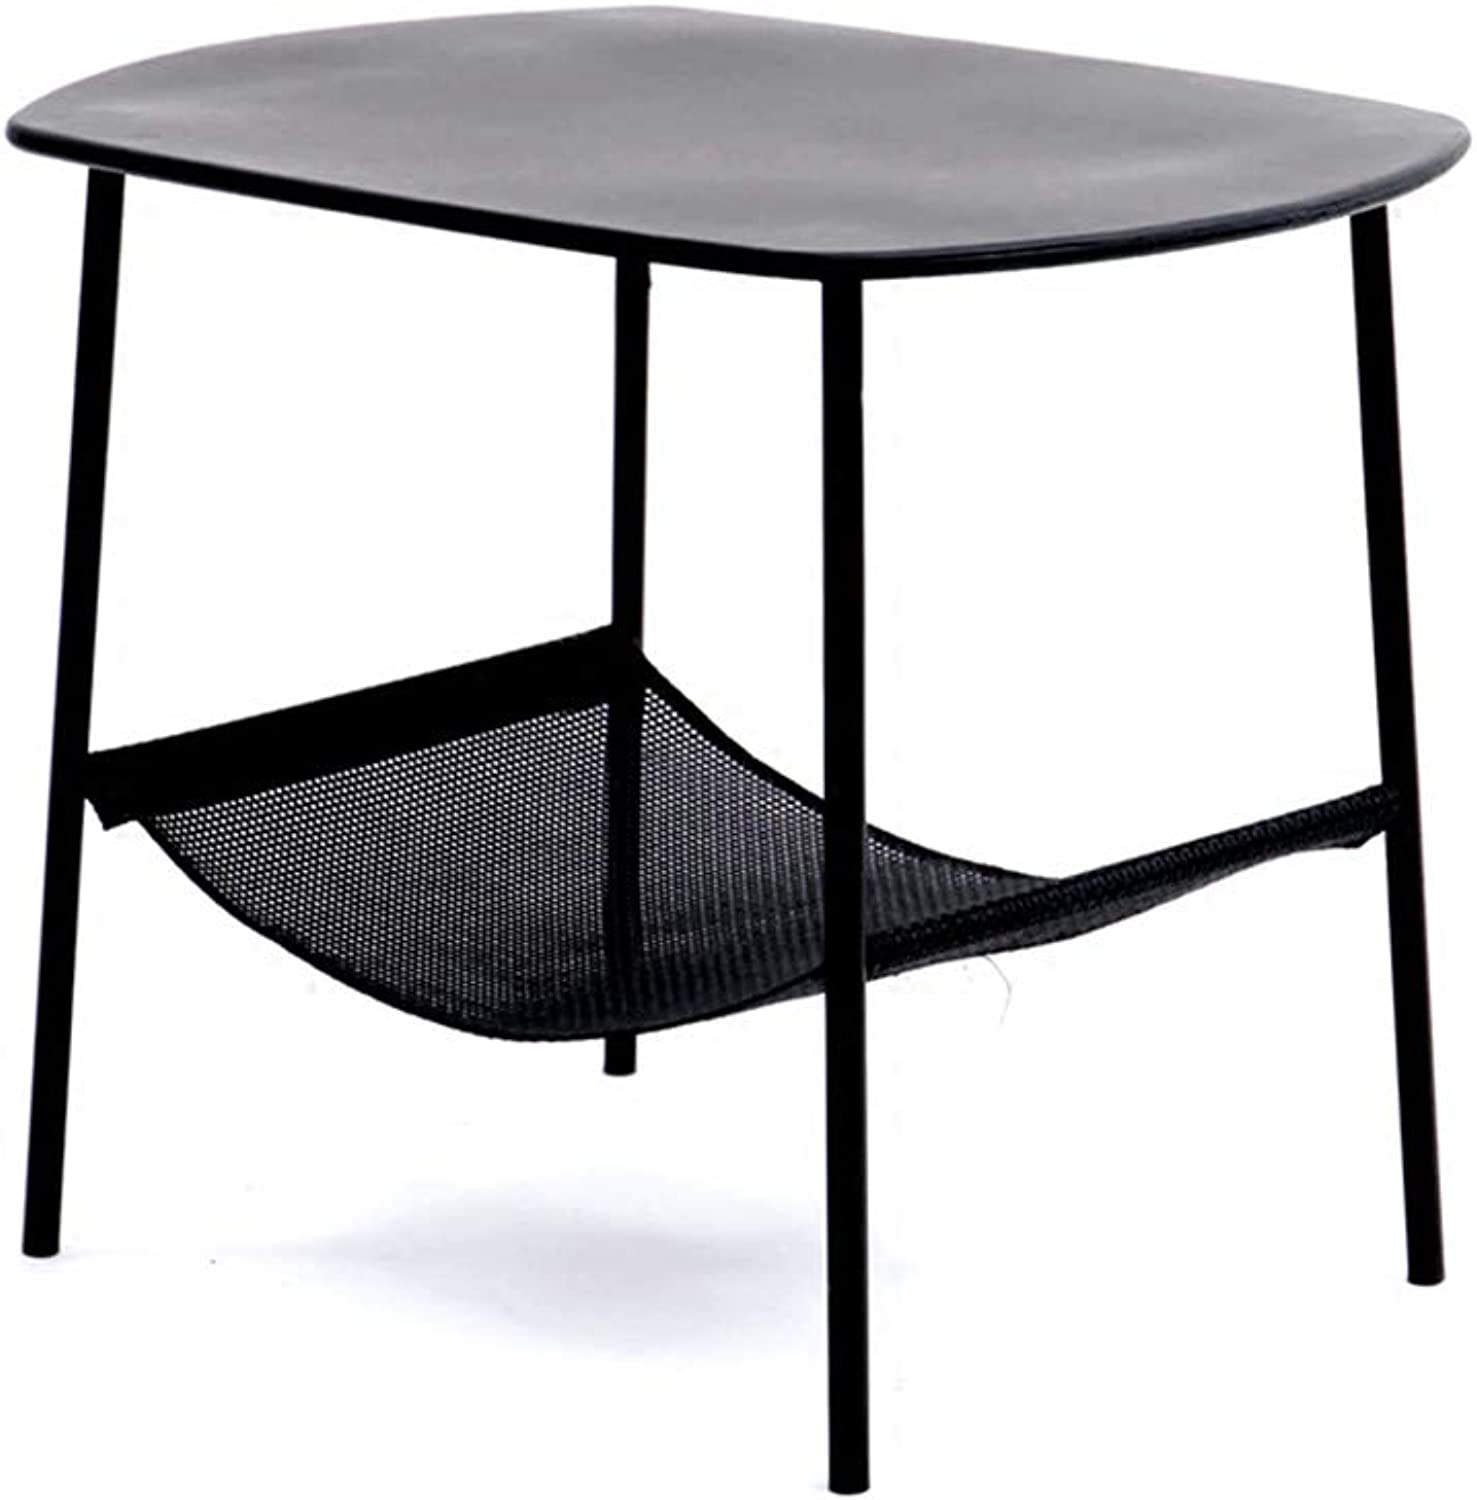 XIAOYAN End Table Nordic Wrought Iron Modern Minimalist Side Table Multi-Function Living Room Bedroom Mini Coffee Table Storage Table Black Multifunction